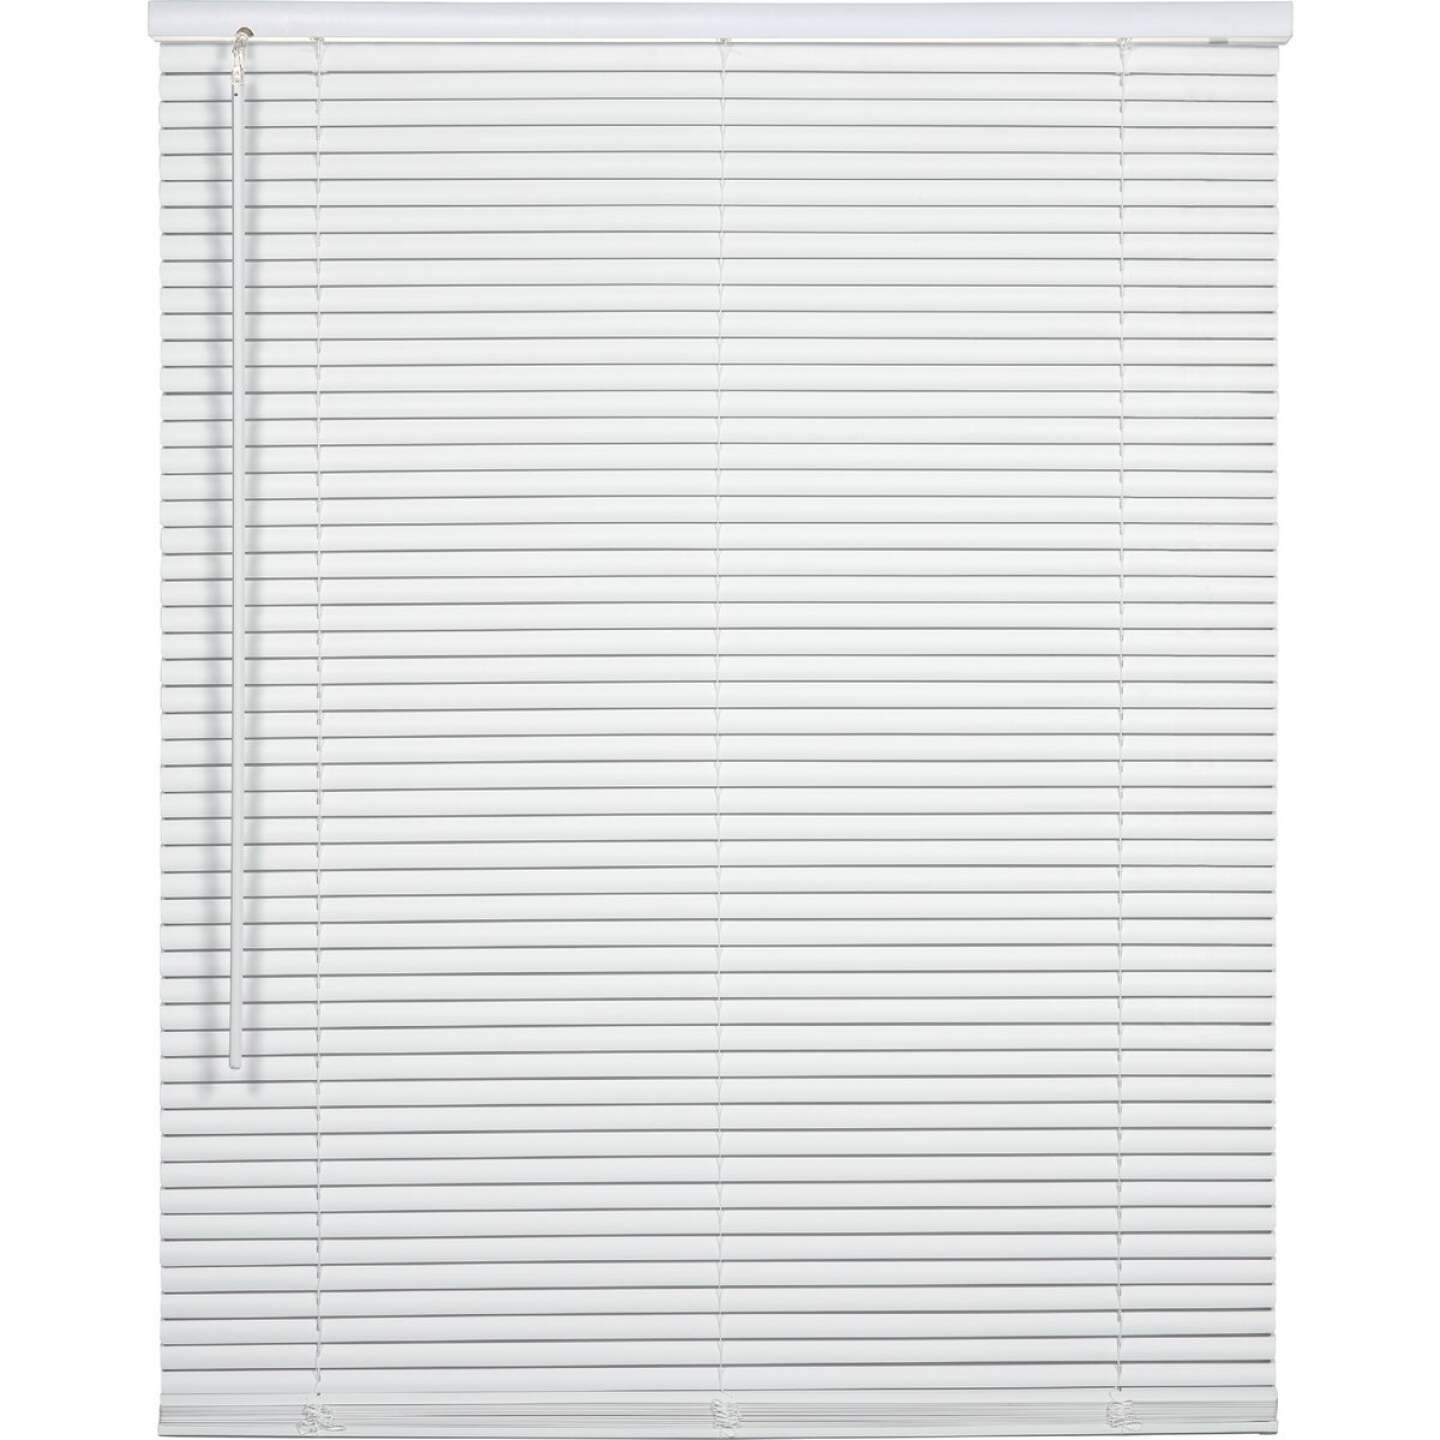 Home Impressions 48 In. x 72 In. x 1 In. White Vinyl Light Filtering Cordless Mini Blind Image 1